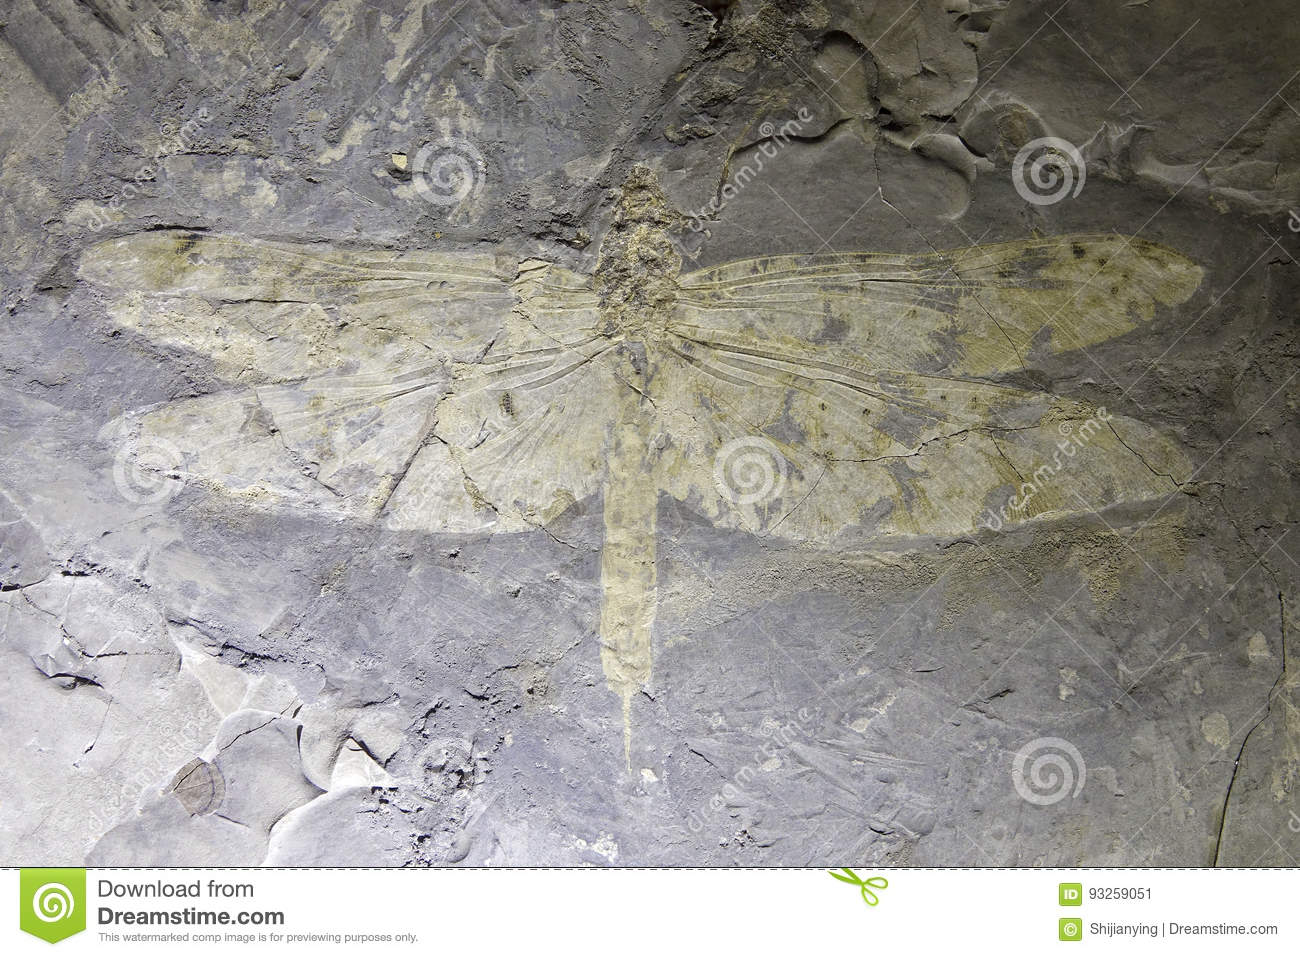 Download Dragonfly fossil stock image. Image of insect, fossils - 93259051